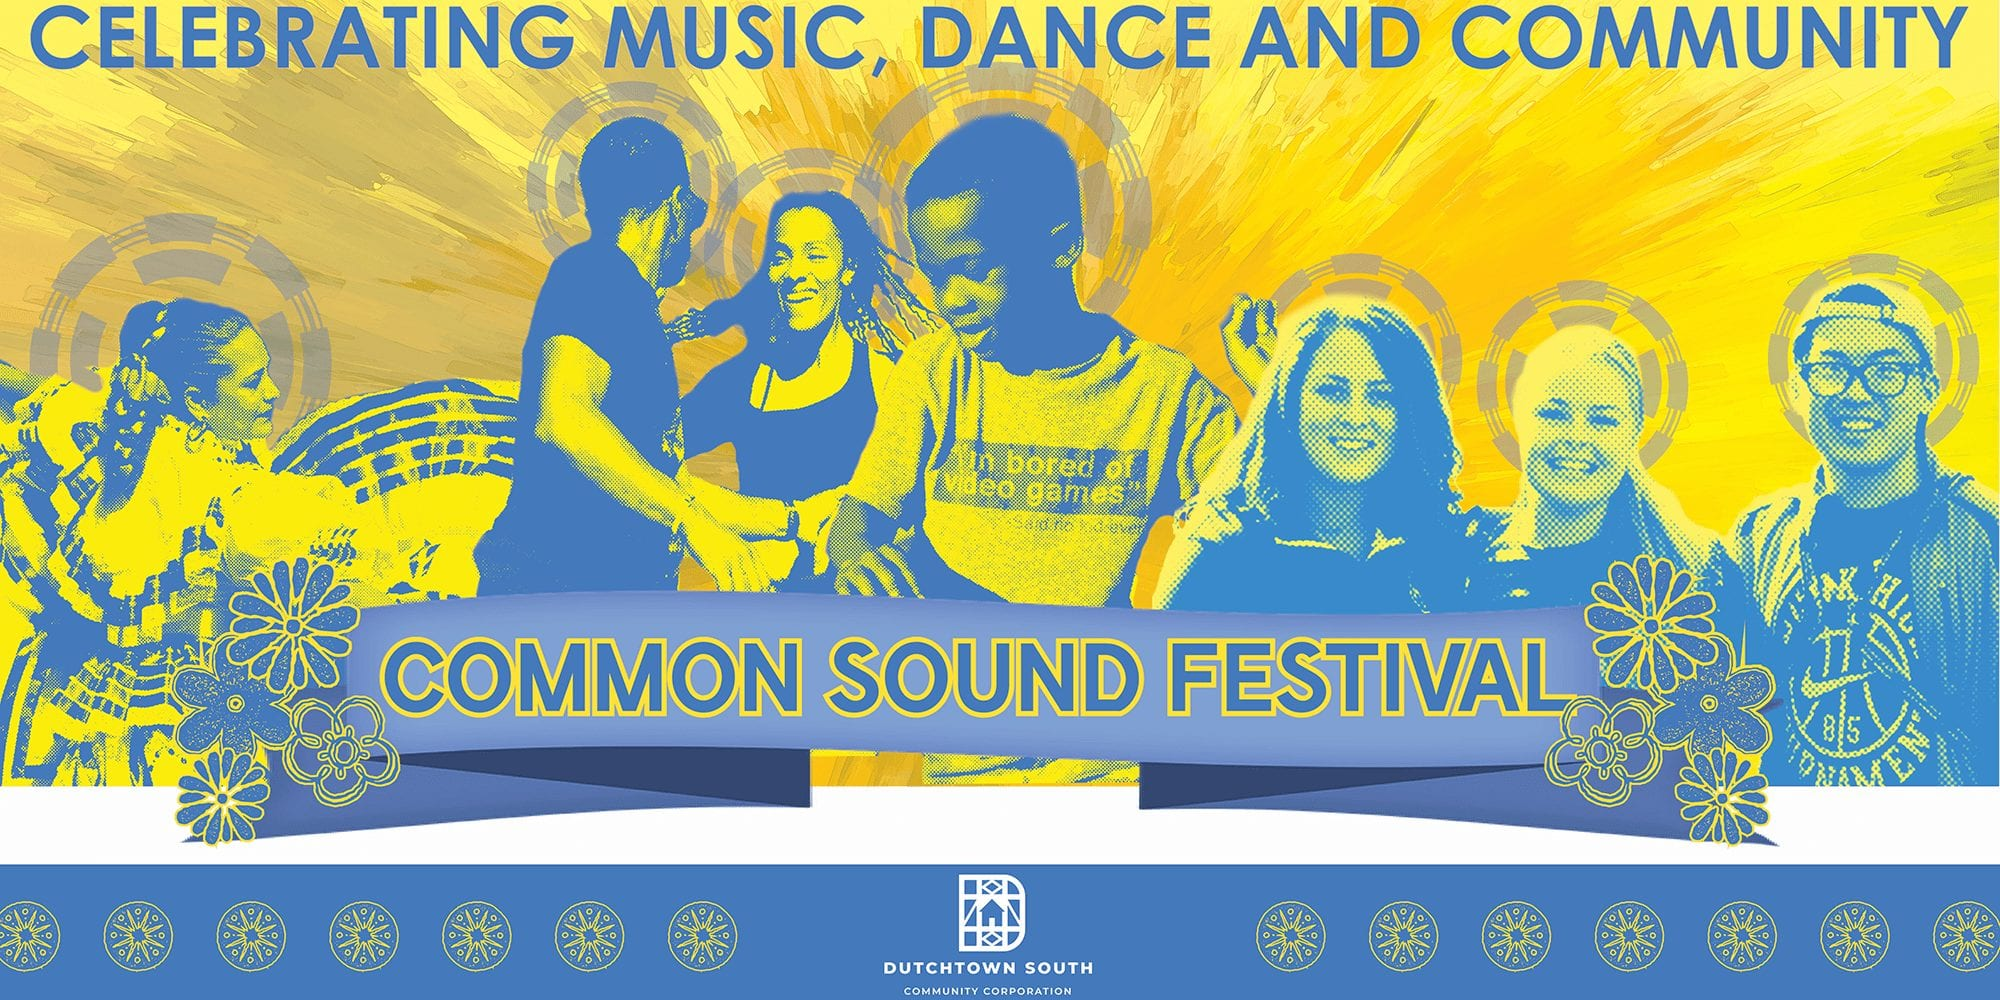 Common Sound Festival 2018, celebrating music, dance, and community